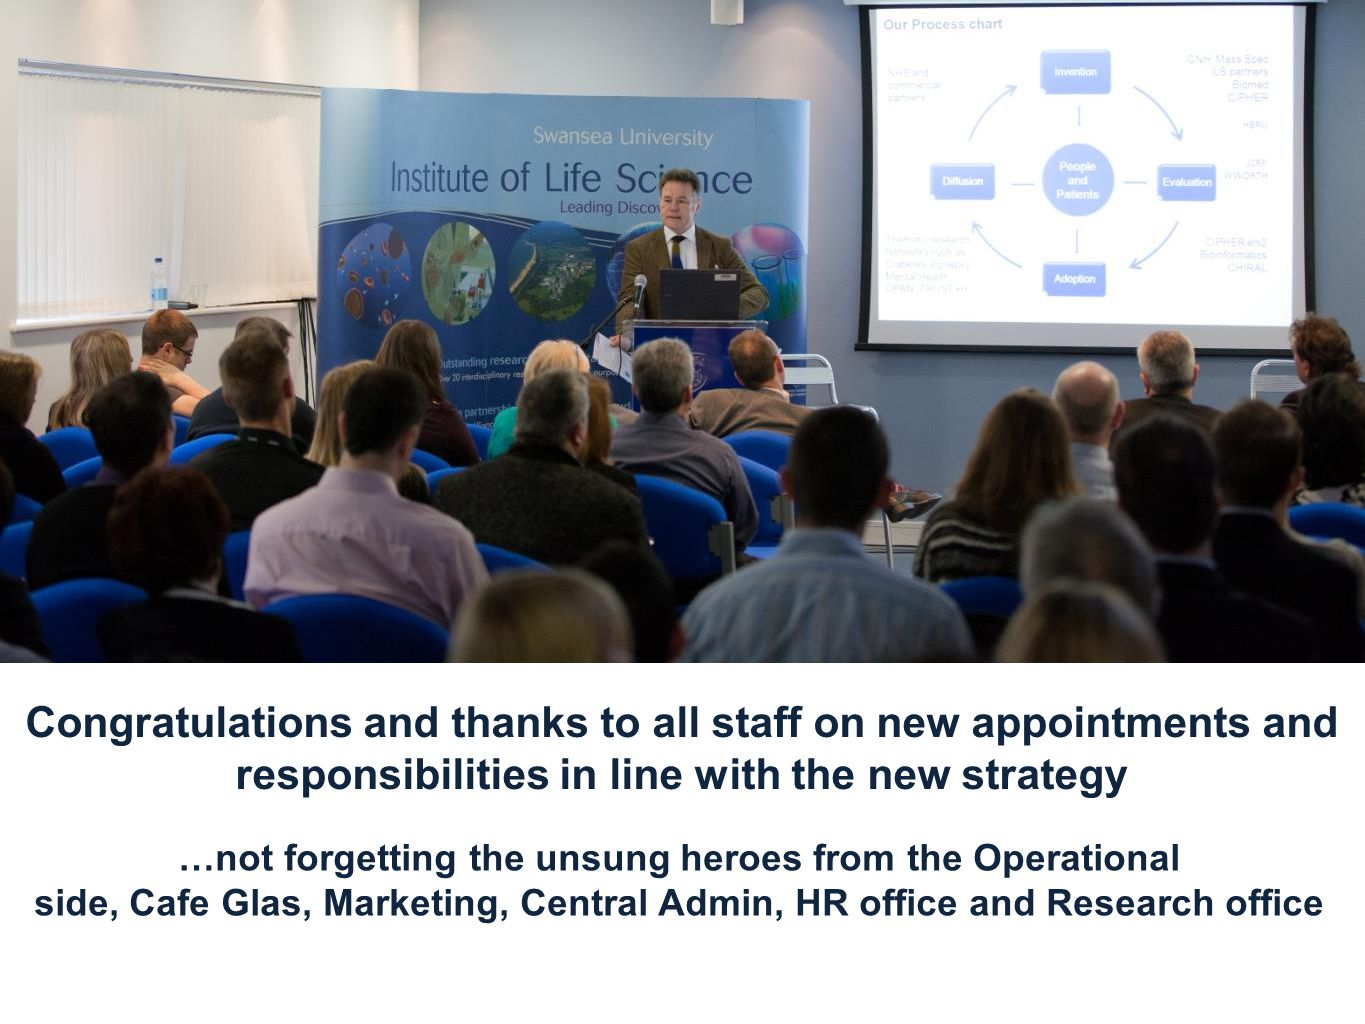 Congratulations and thanks to all staff on new appointments and responsibilities in line with the new strategy …not forgetting the unsung heroes from